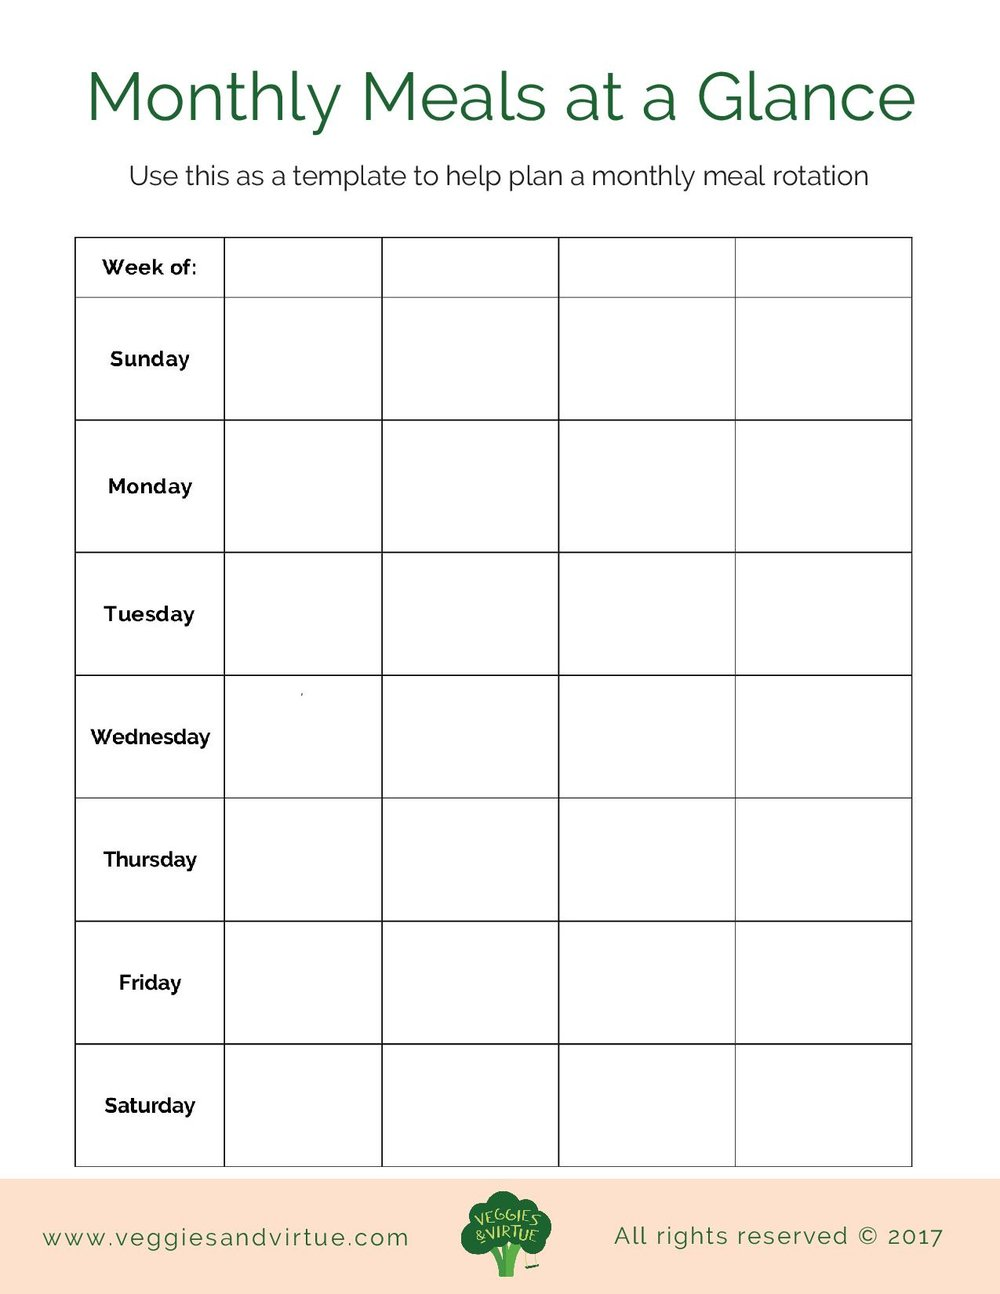 Meal Planning Templates Download - Veggies & Virtue-page-005.jpg